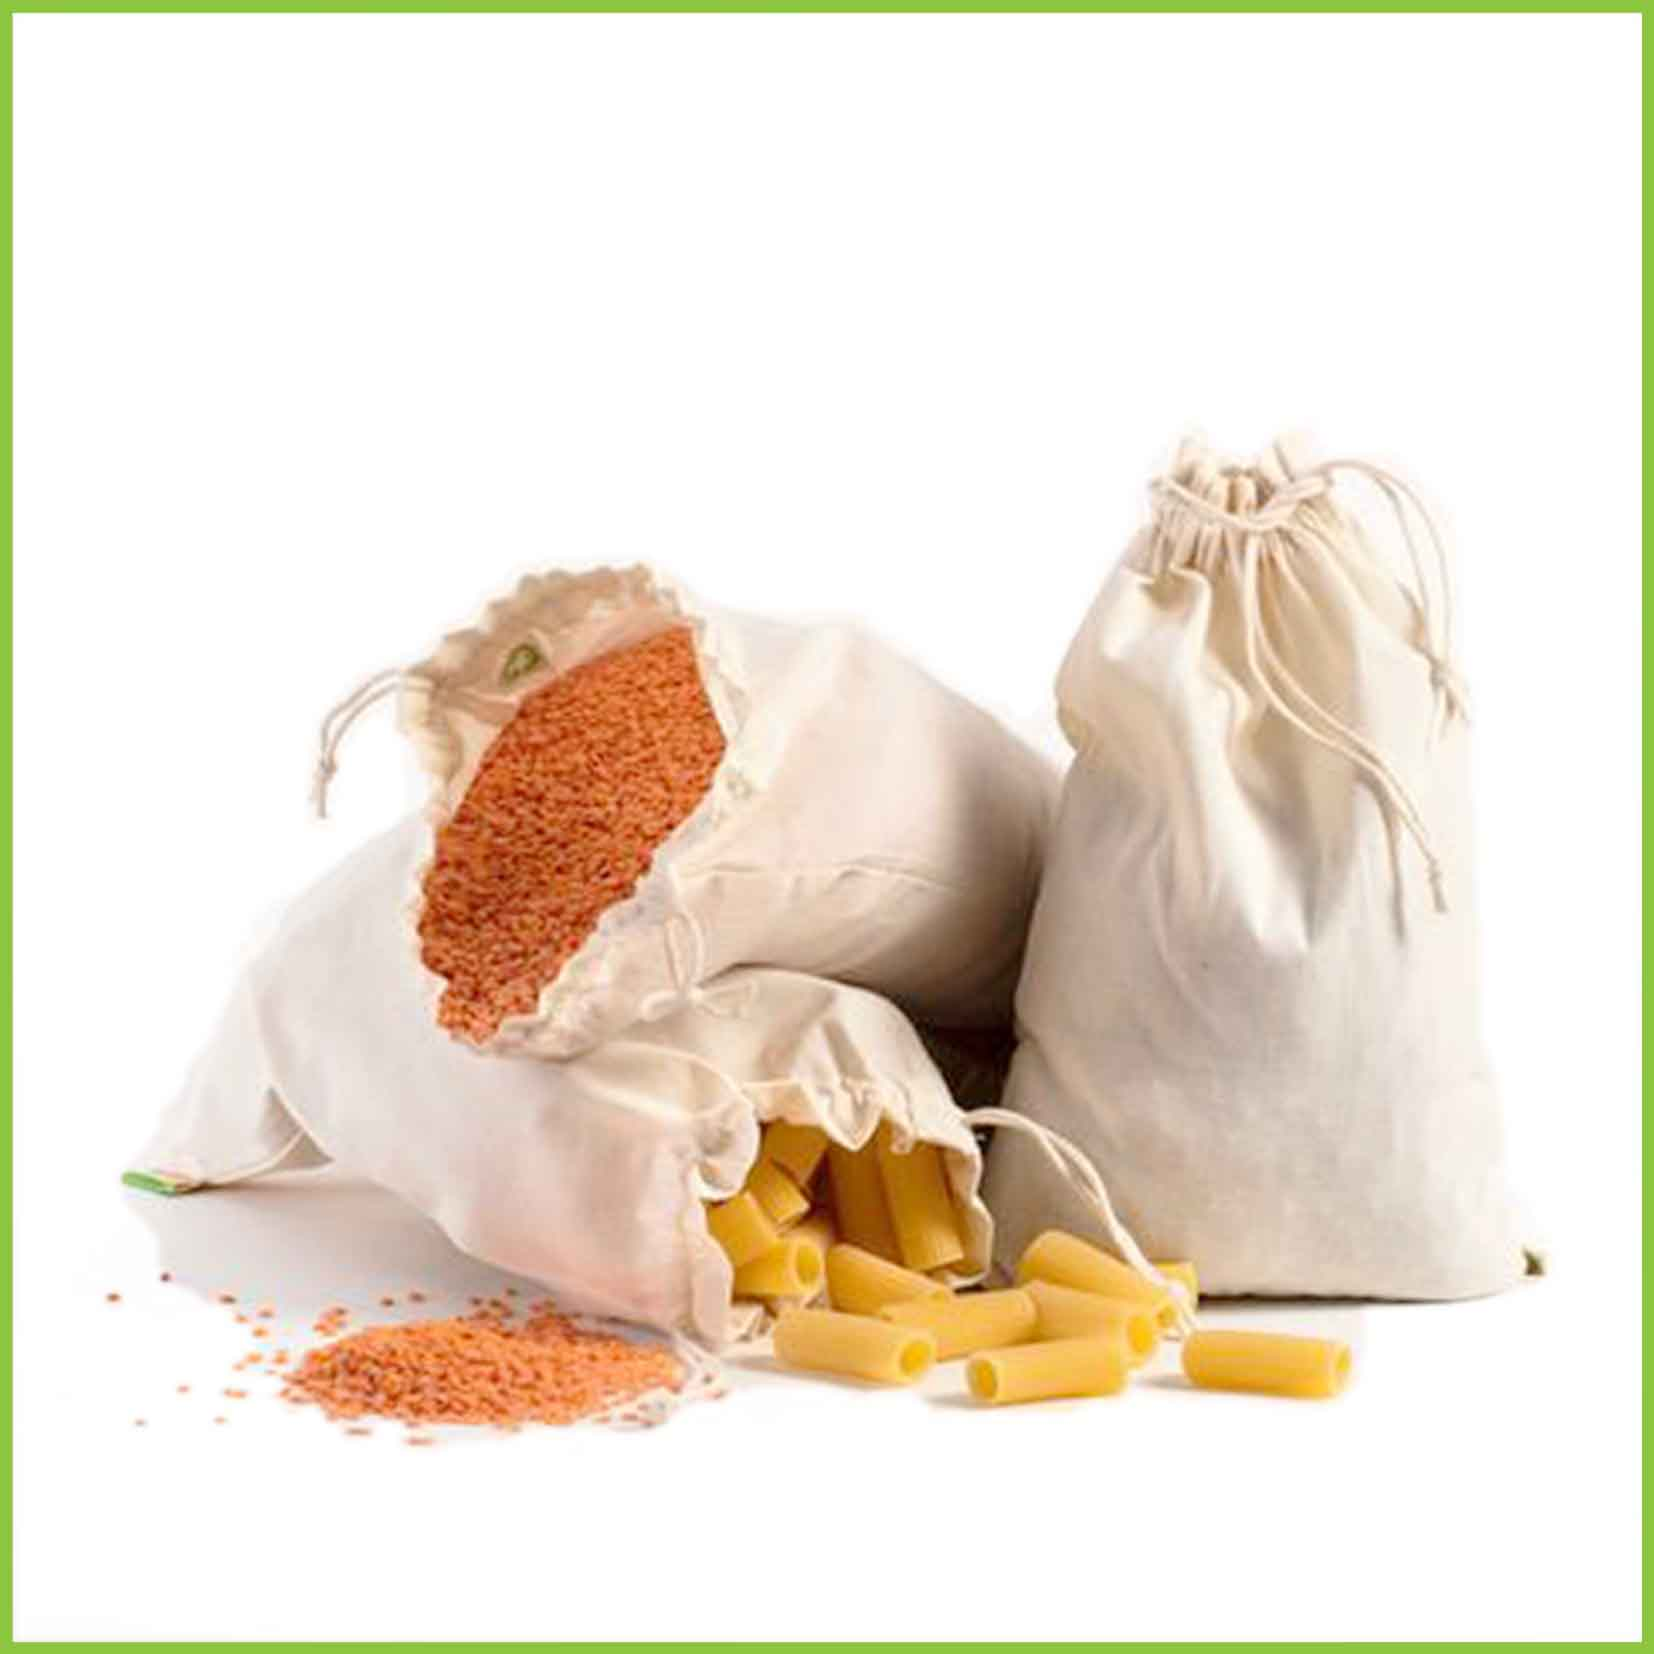 Three bulk bin bags holding dried foods, with pull string closures.